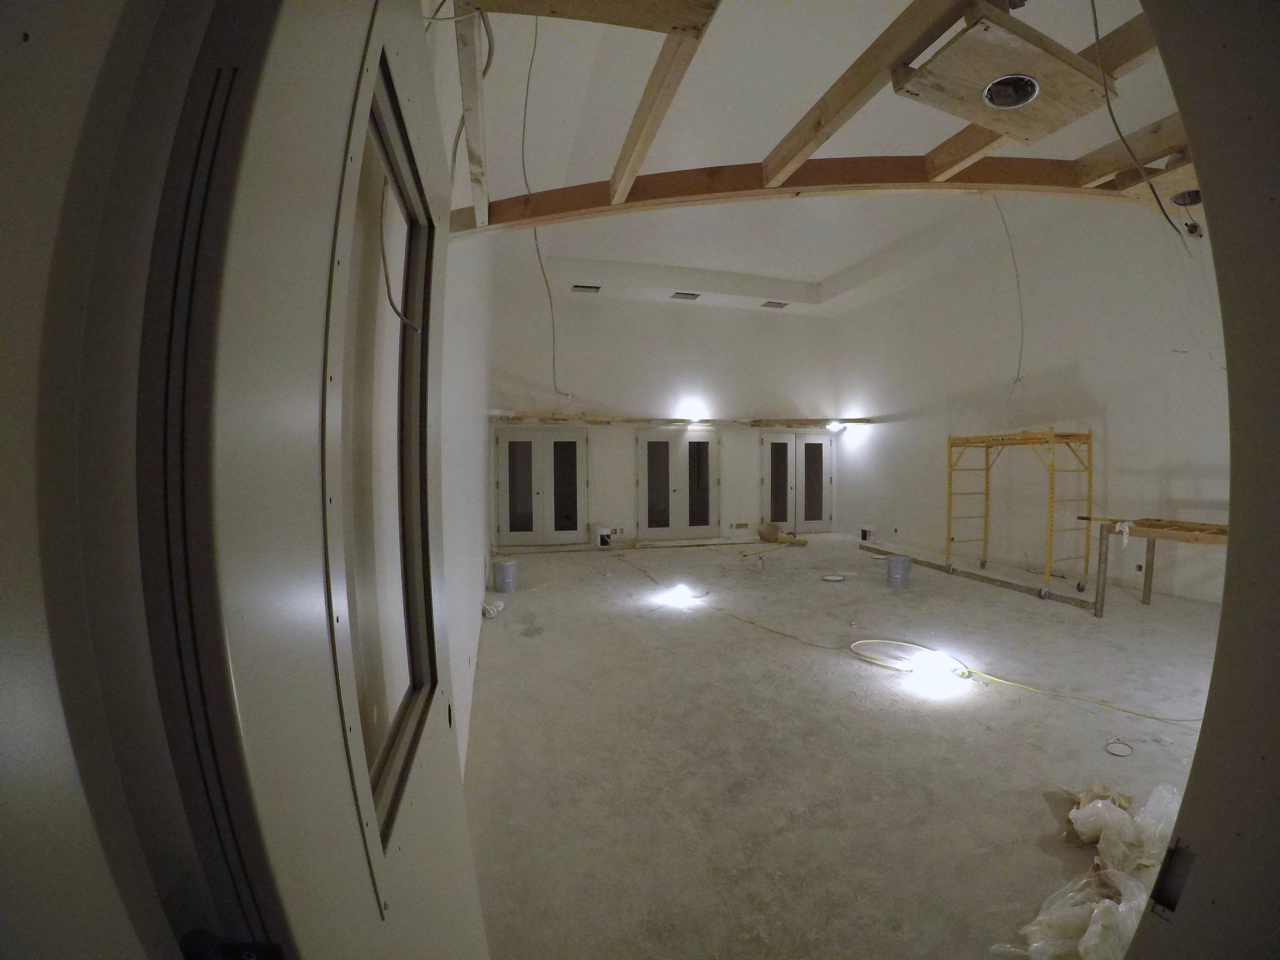 Tracking room 1 with paint complete.